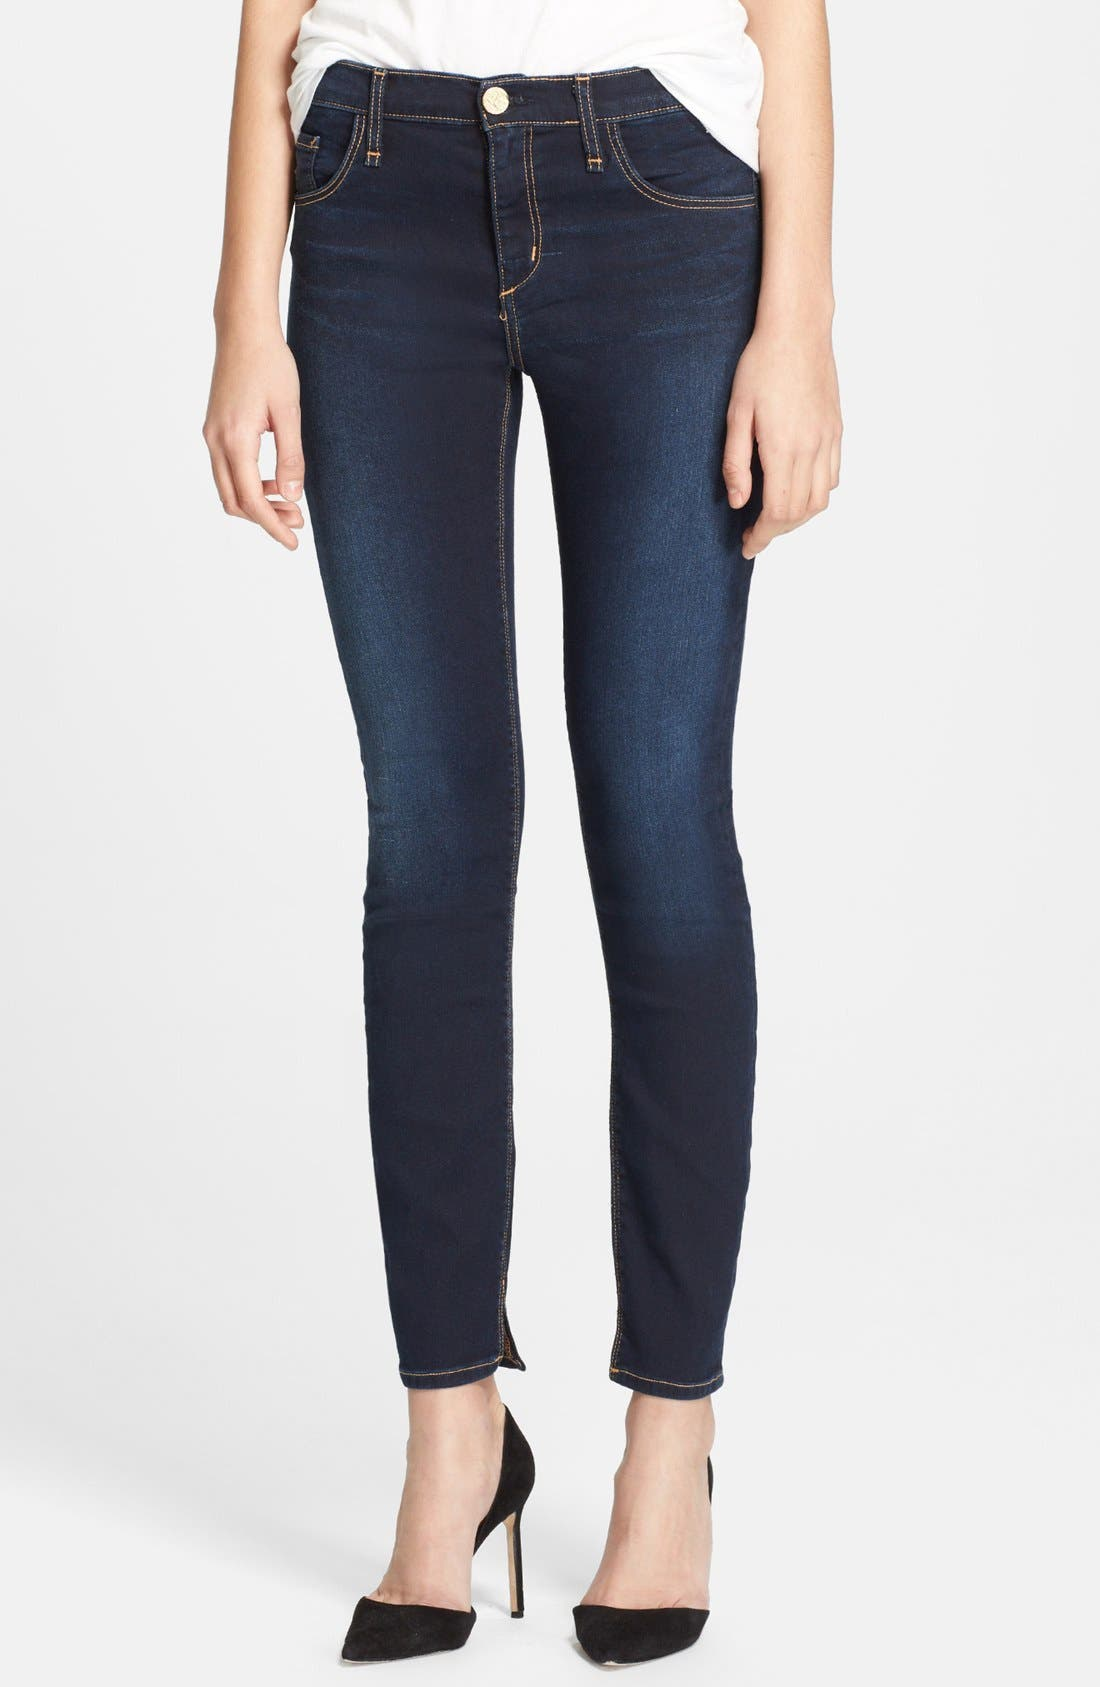 Alternate Image 1 Selected - McGuire Skinny Ankle Jeans (Atlantic Blue)